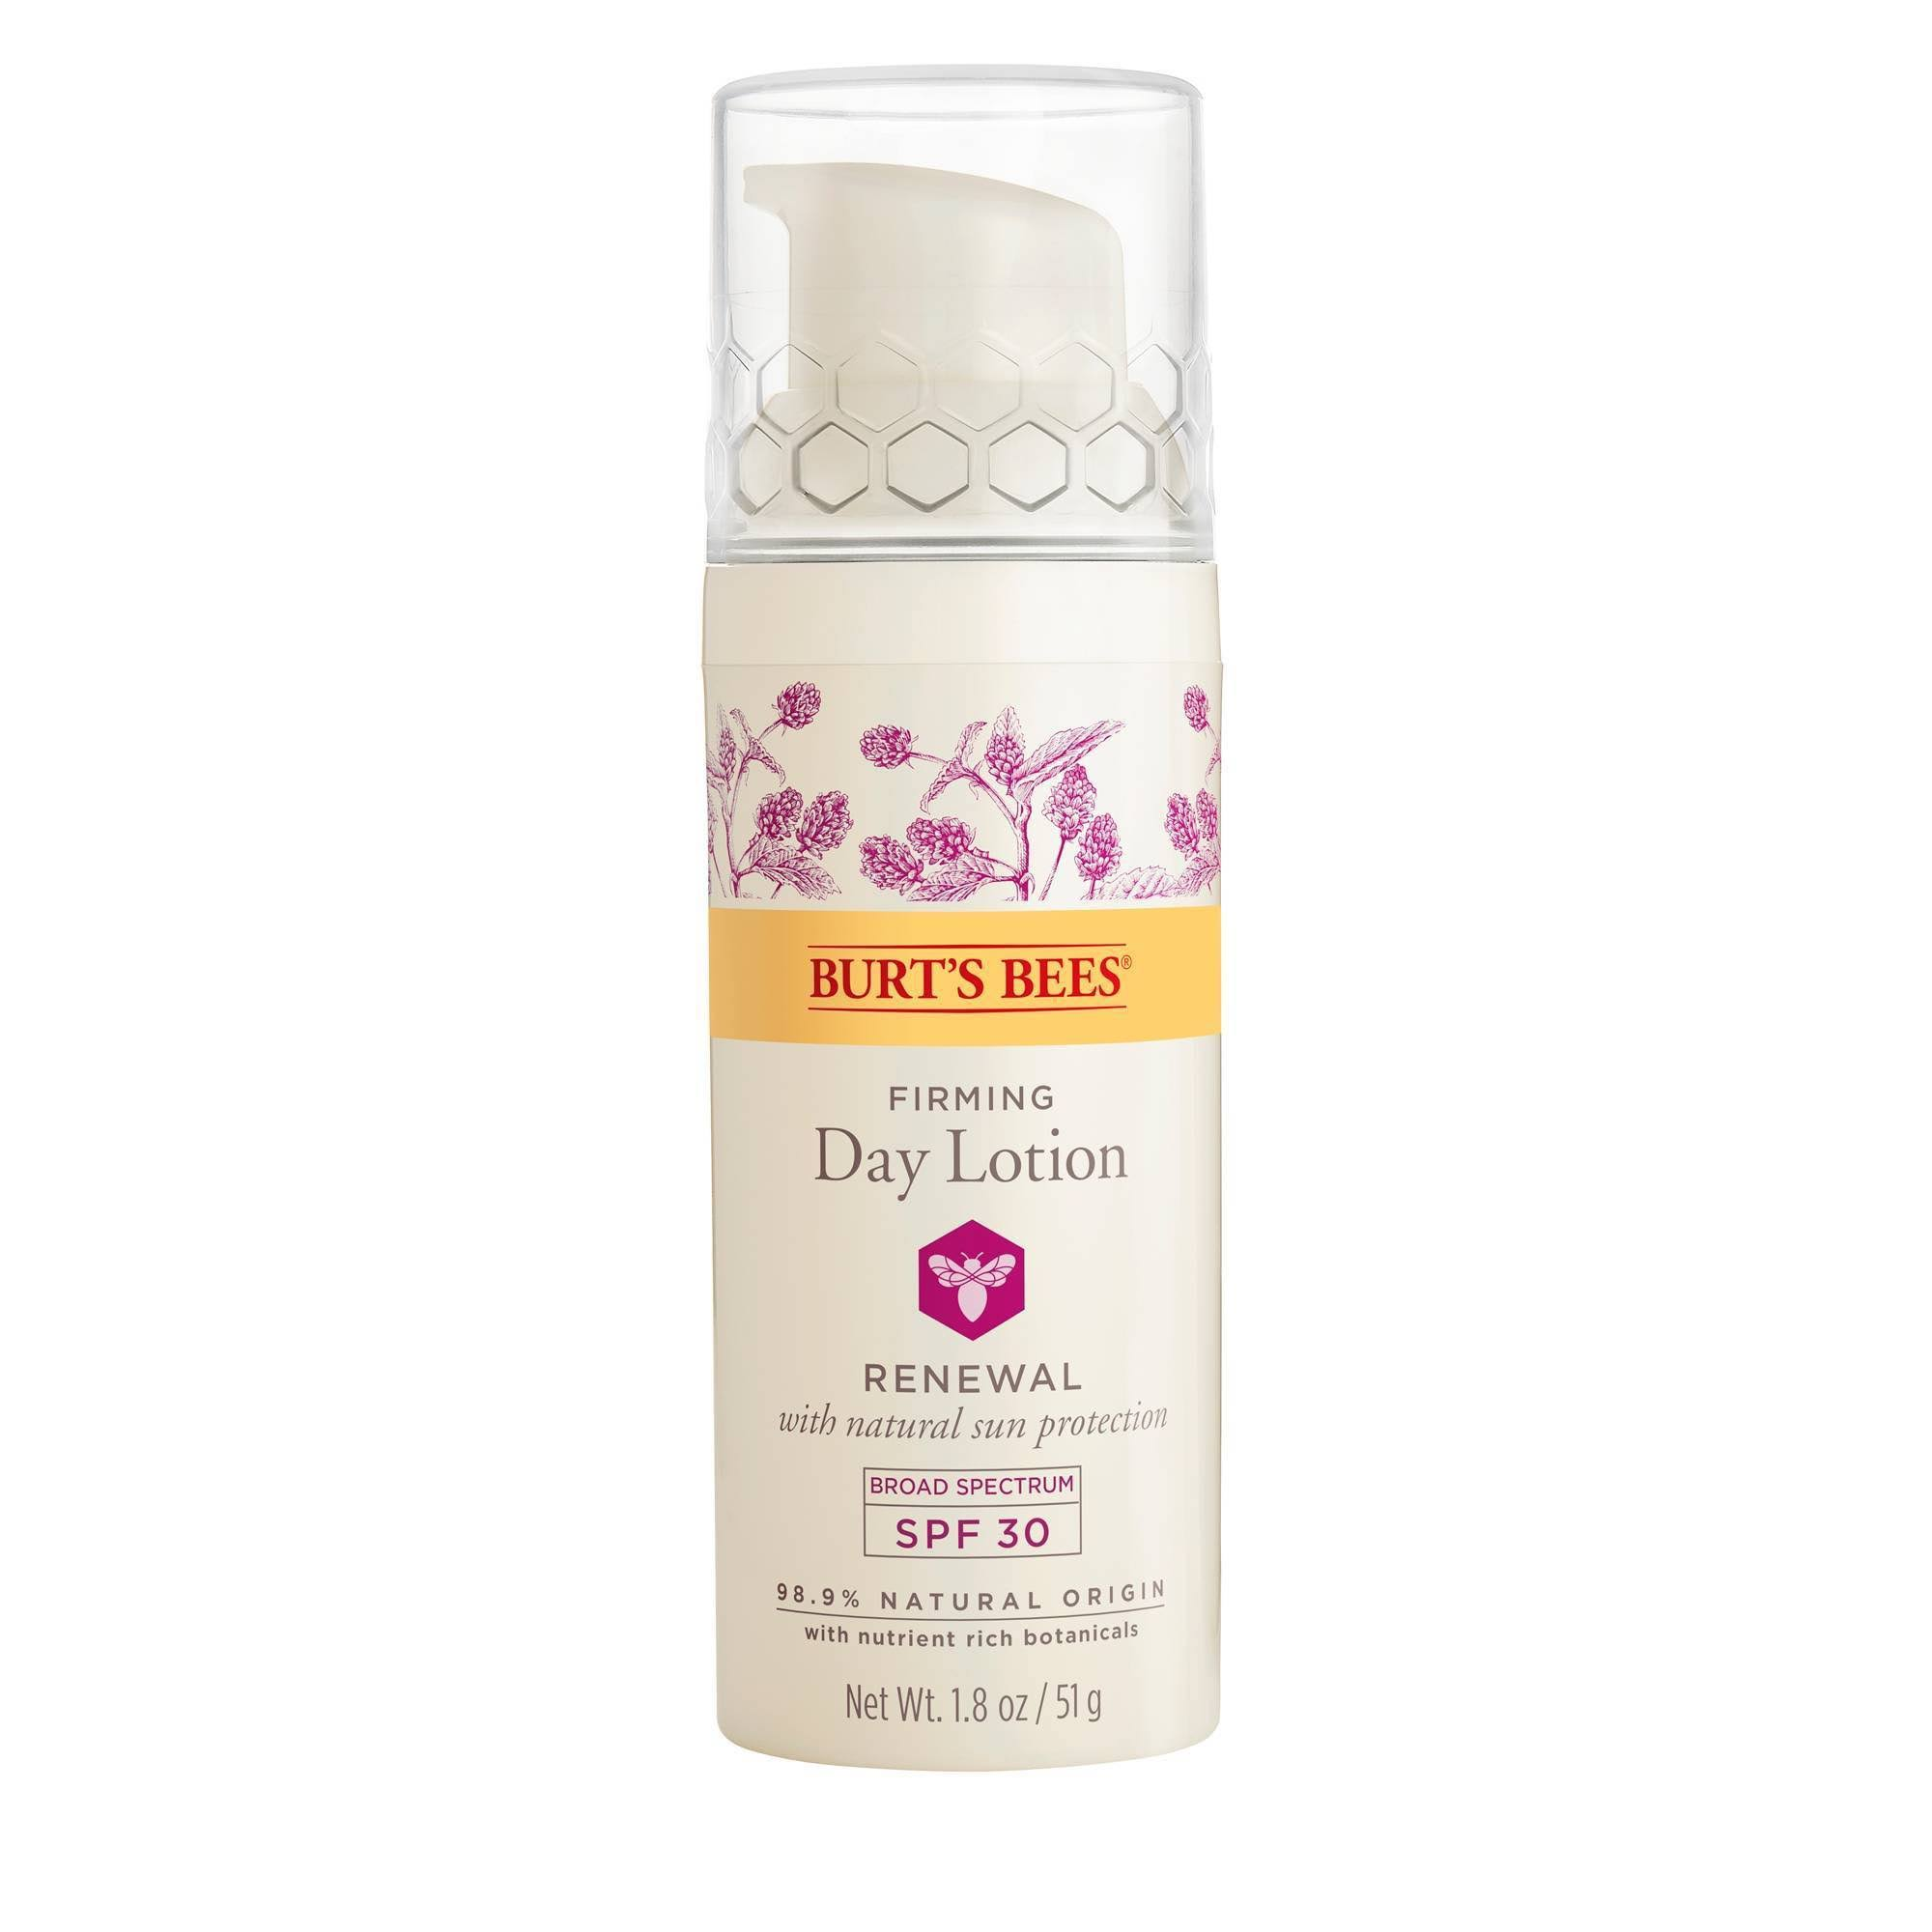 Burts Bees Day Lotion, Firming, Broad Spectrum SPF 30 - 1.8 oz